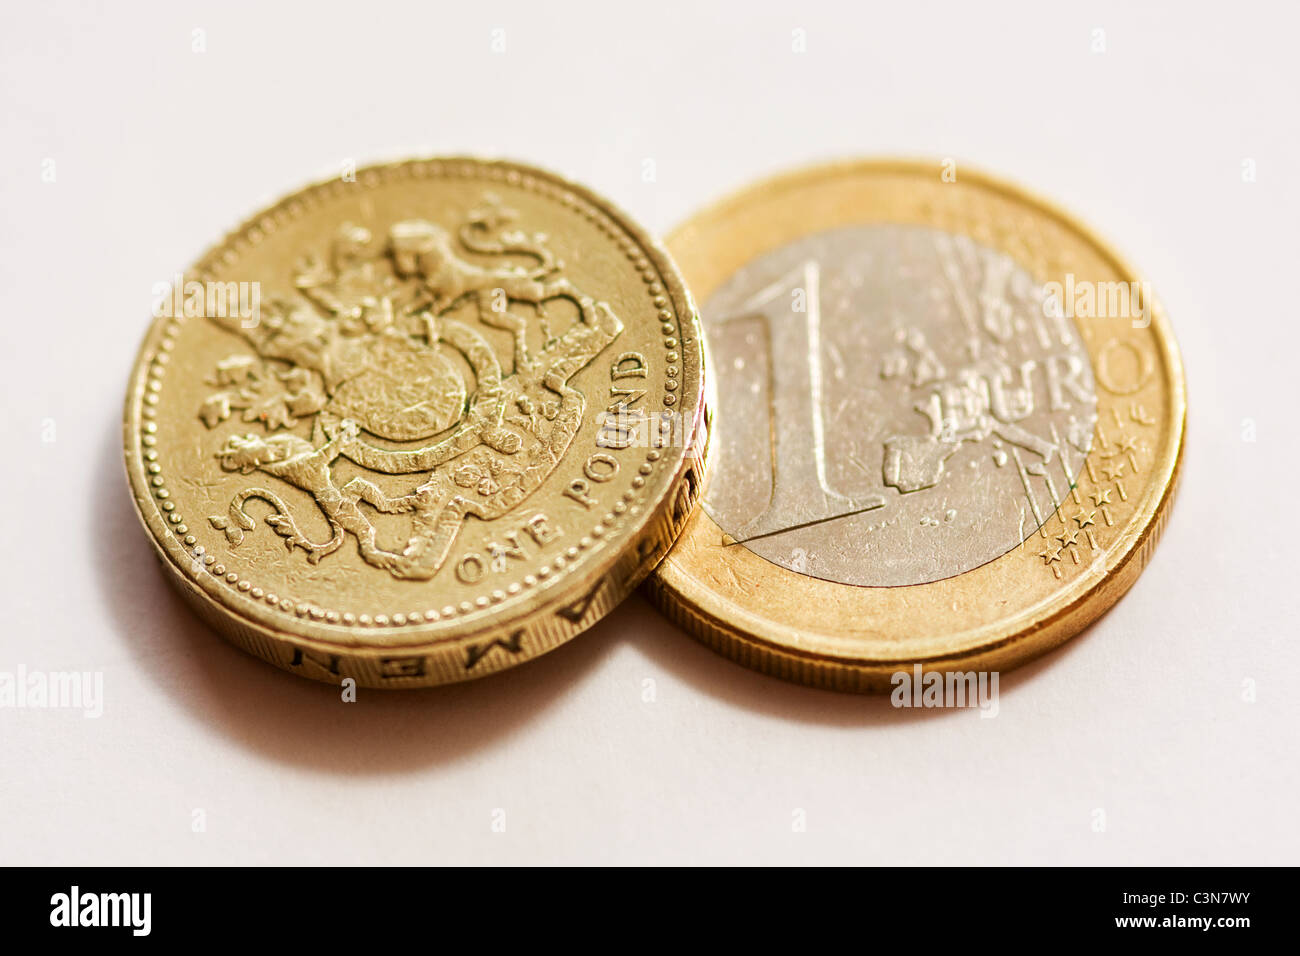 One Pound Coin with a One Euro Coin - Stock Image